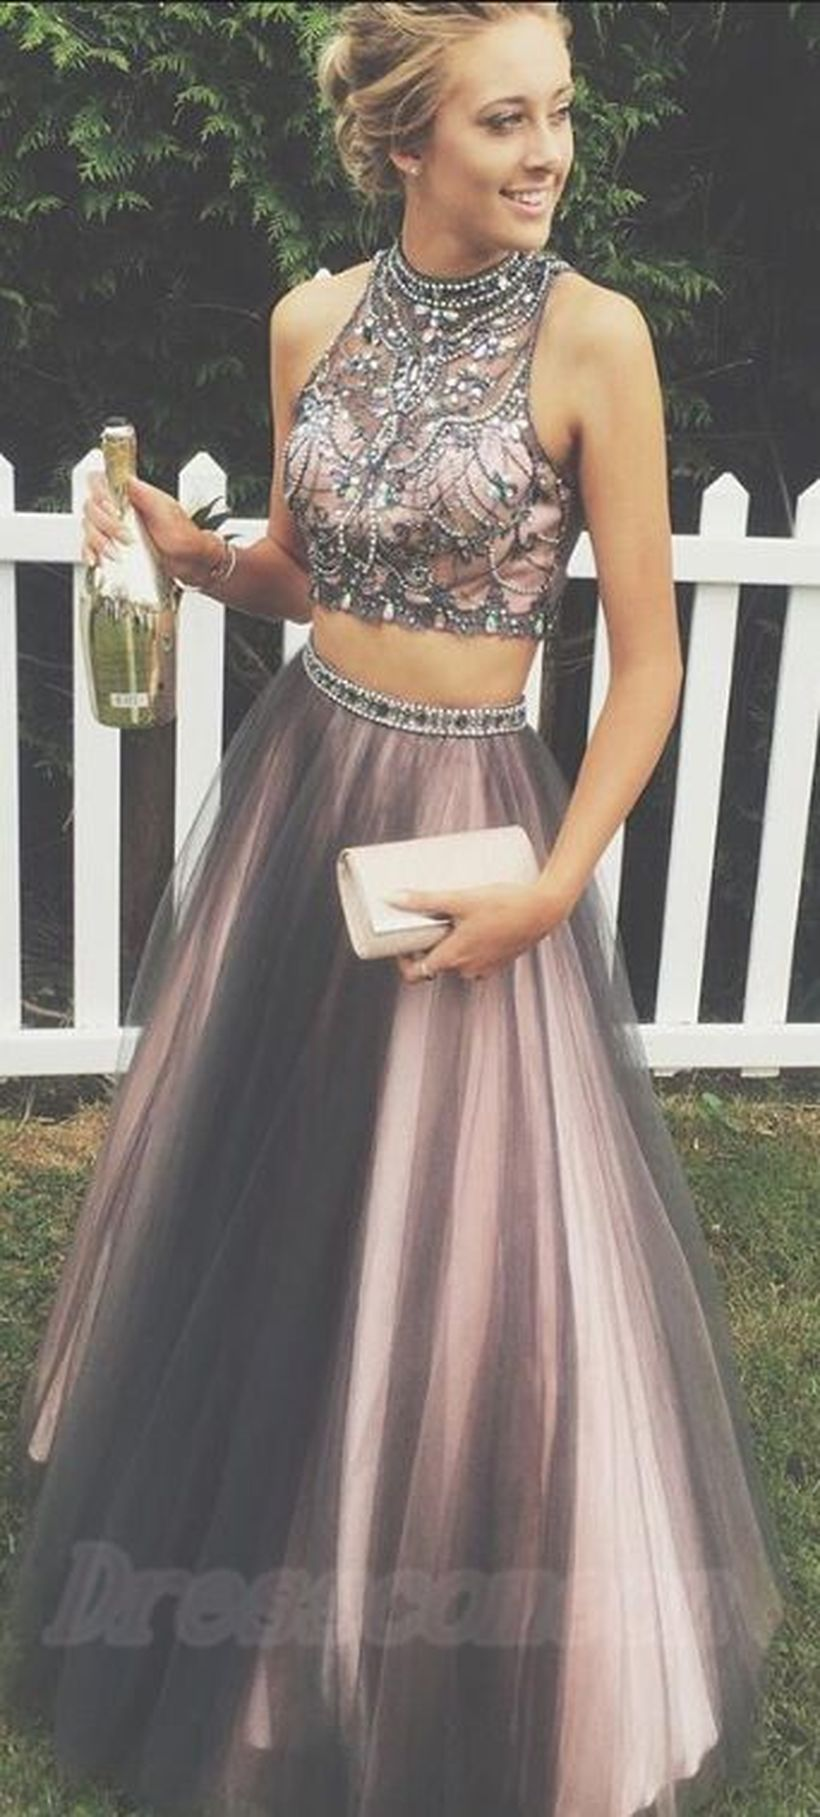 Gorgeous prom dresses for teens ideas 2017 74